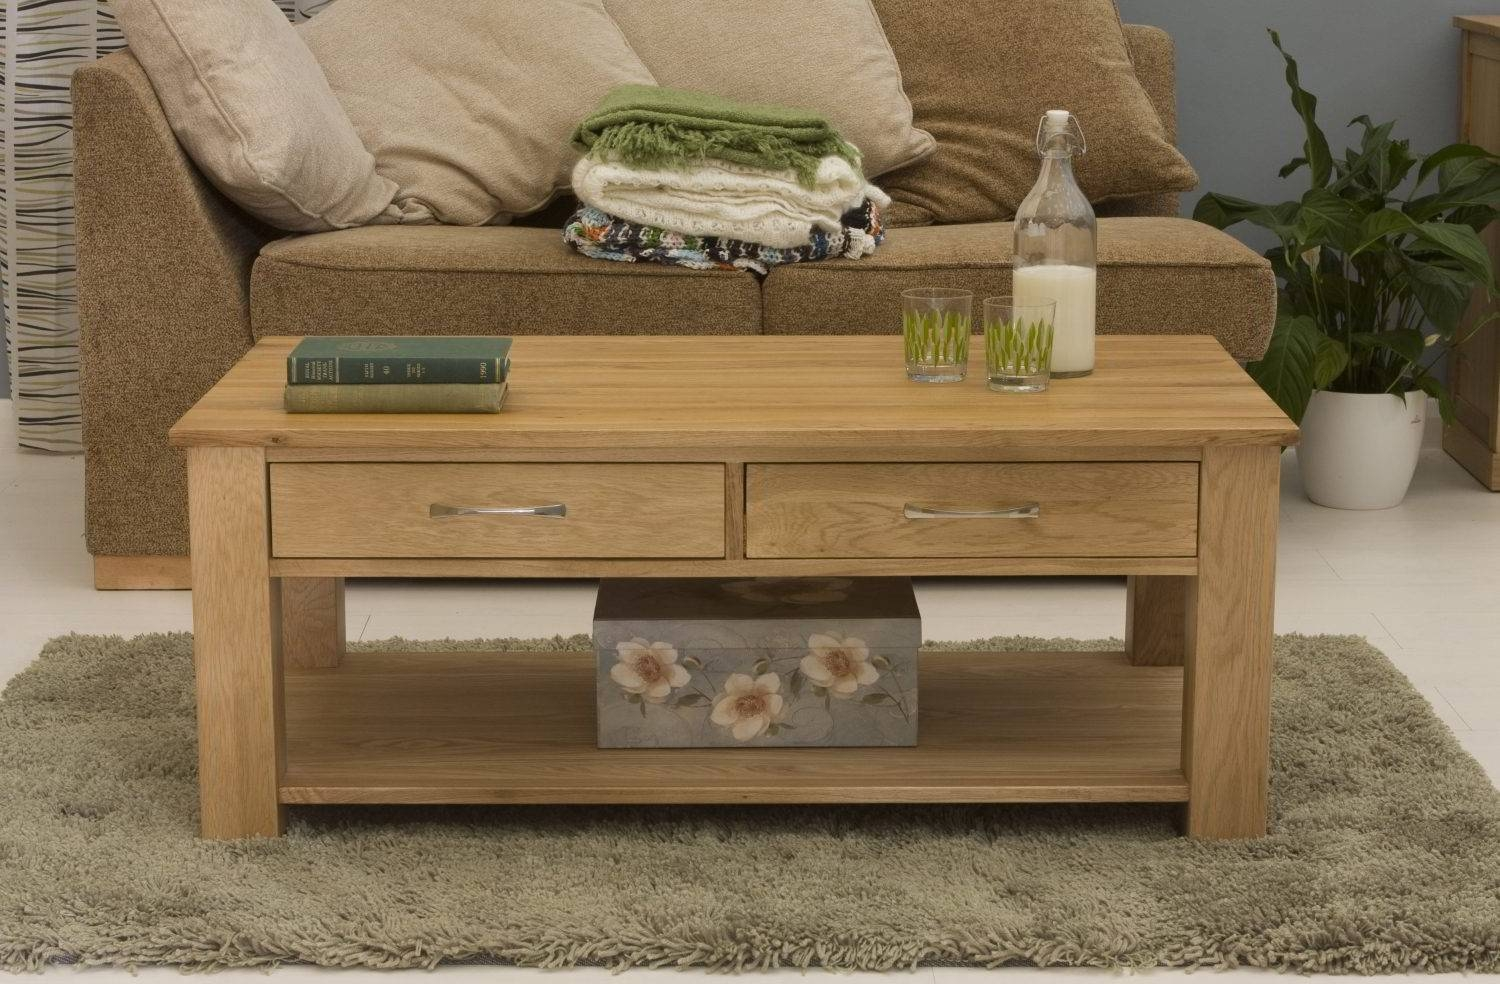 Conran Solid Oak Living Room Lounge Furniture Four Drawer Storage inside Solid Oak Coffee Table With Storage (Image 3 of 15)